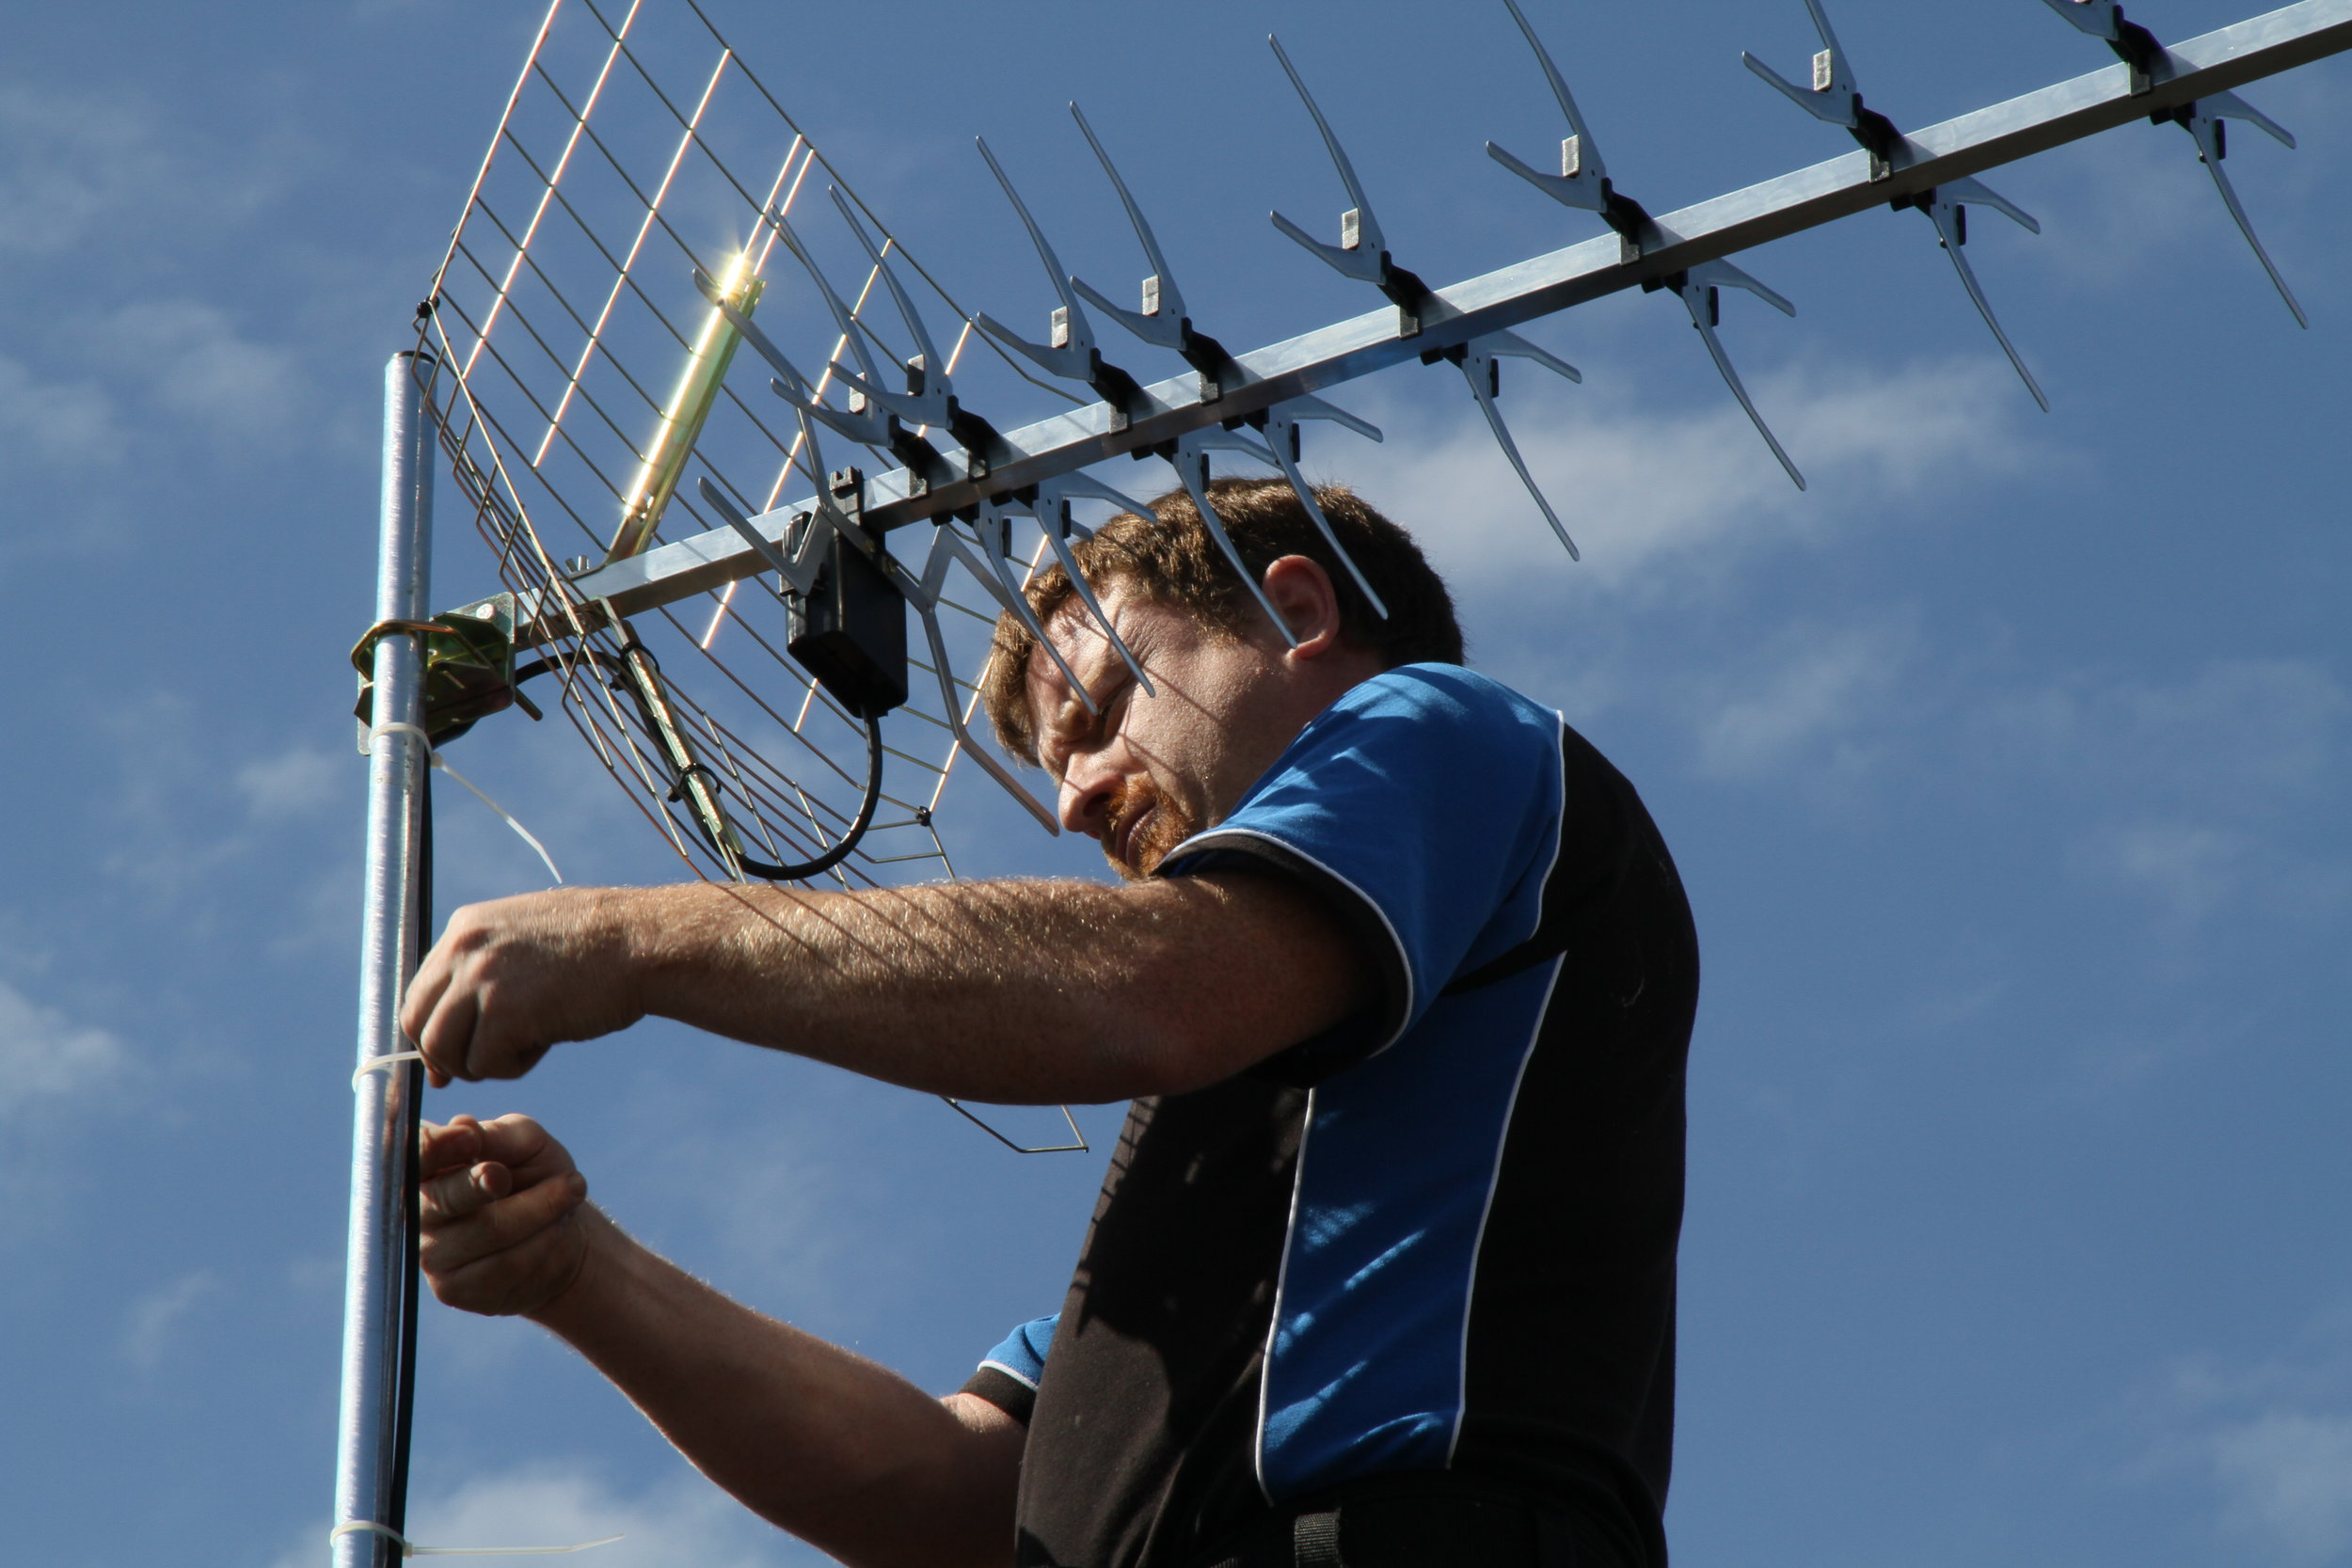 connecting Digital TV Aerials - High quality television sets are pointless without the best Digital Aerial System. Professionally connected and set up aerial systems will provide you with years of consistent and reliable television viewing.